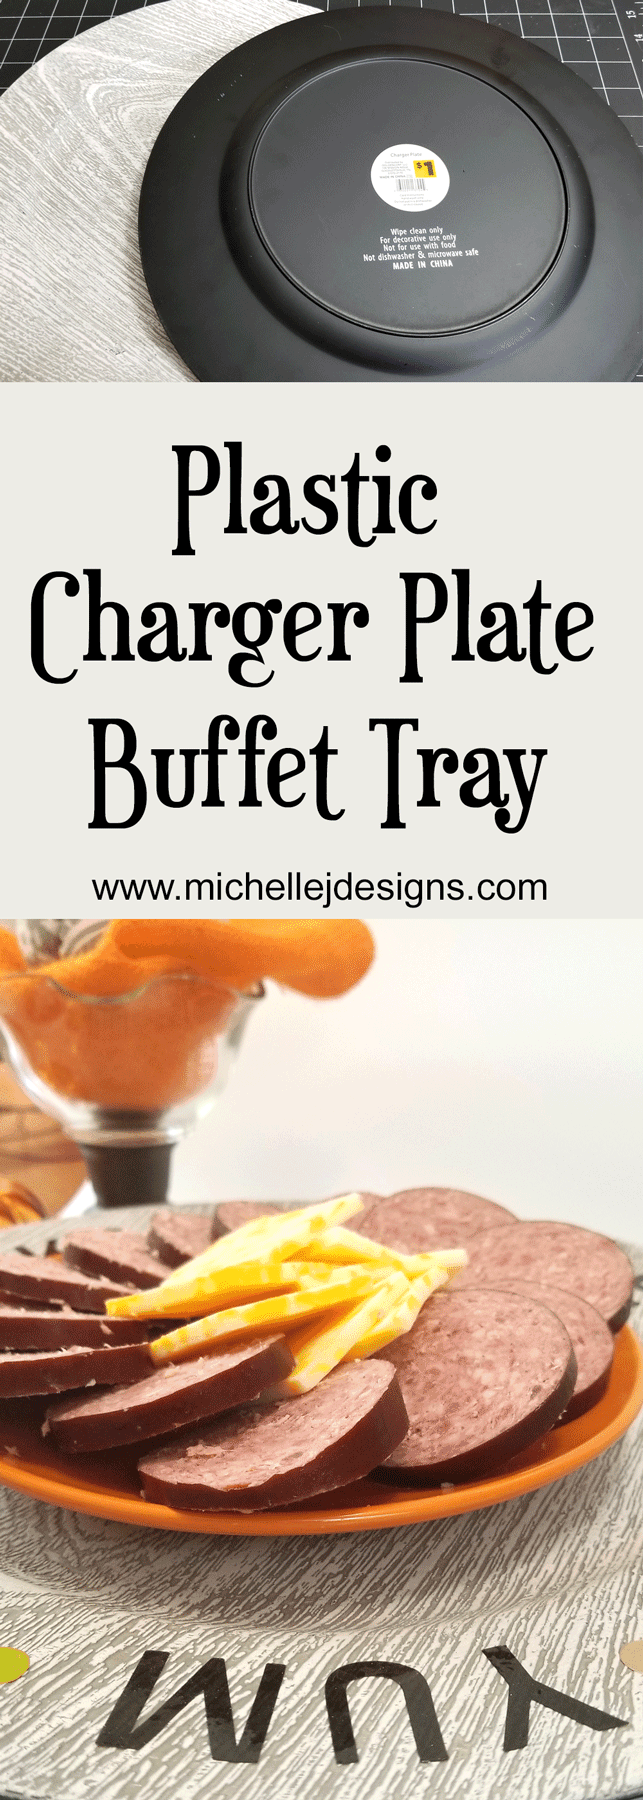 Before and after plastic charger plates and buffet tray